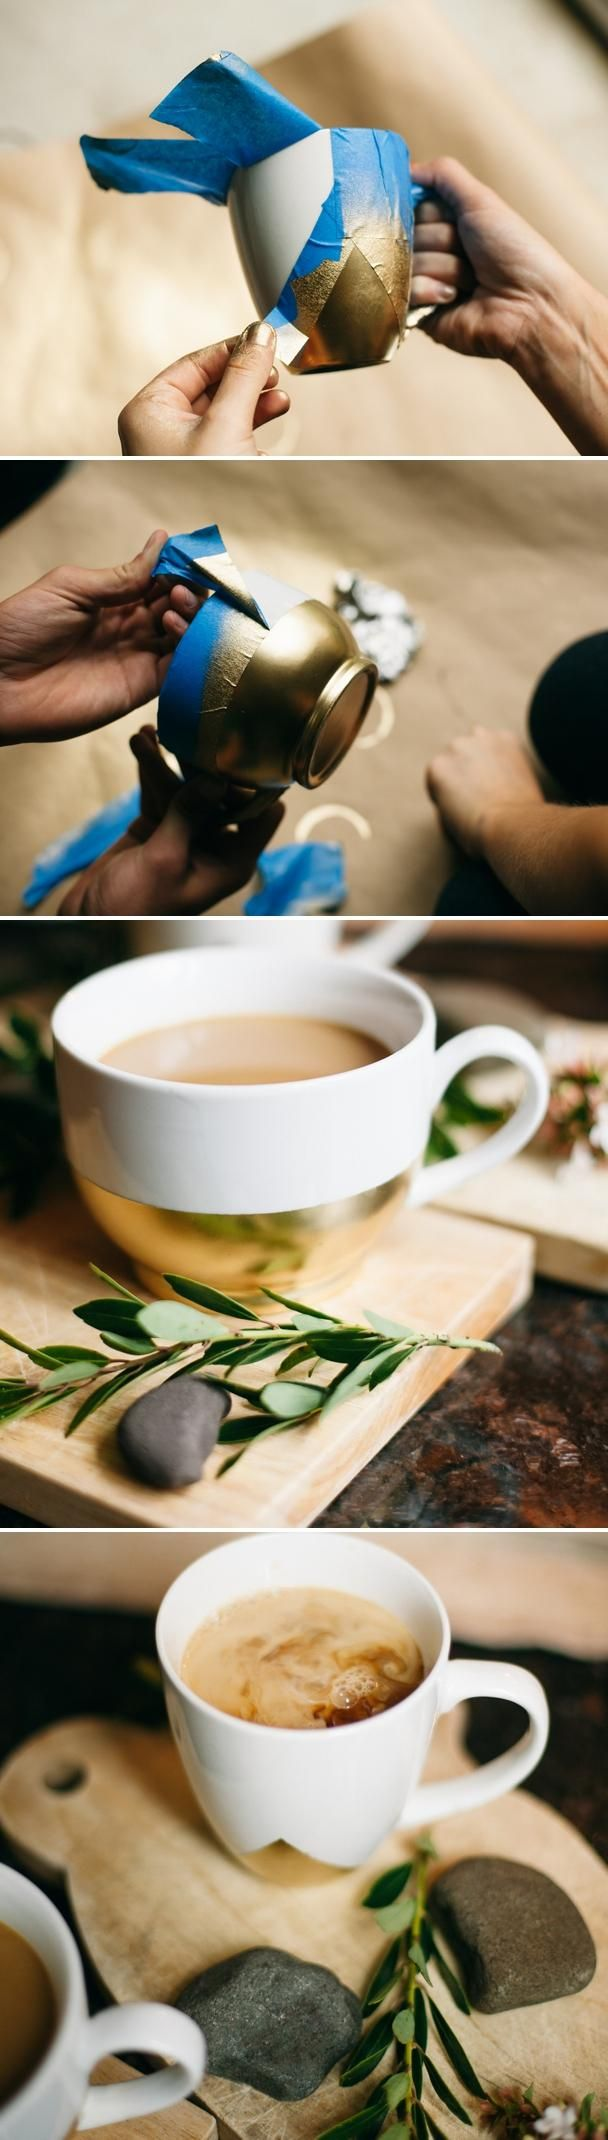 Make plain, old white teacups or mugs elegant and new again with this simple guide. It offers an inexpensive way to give home accessories or tools a modern gold twist using painter's tape, gold spray paint and clear sealer.